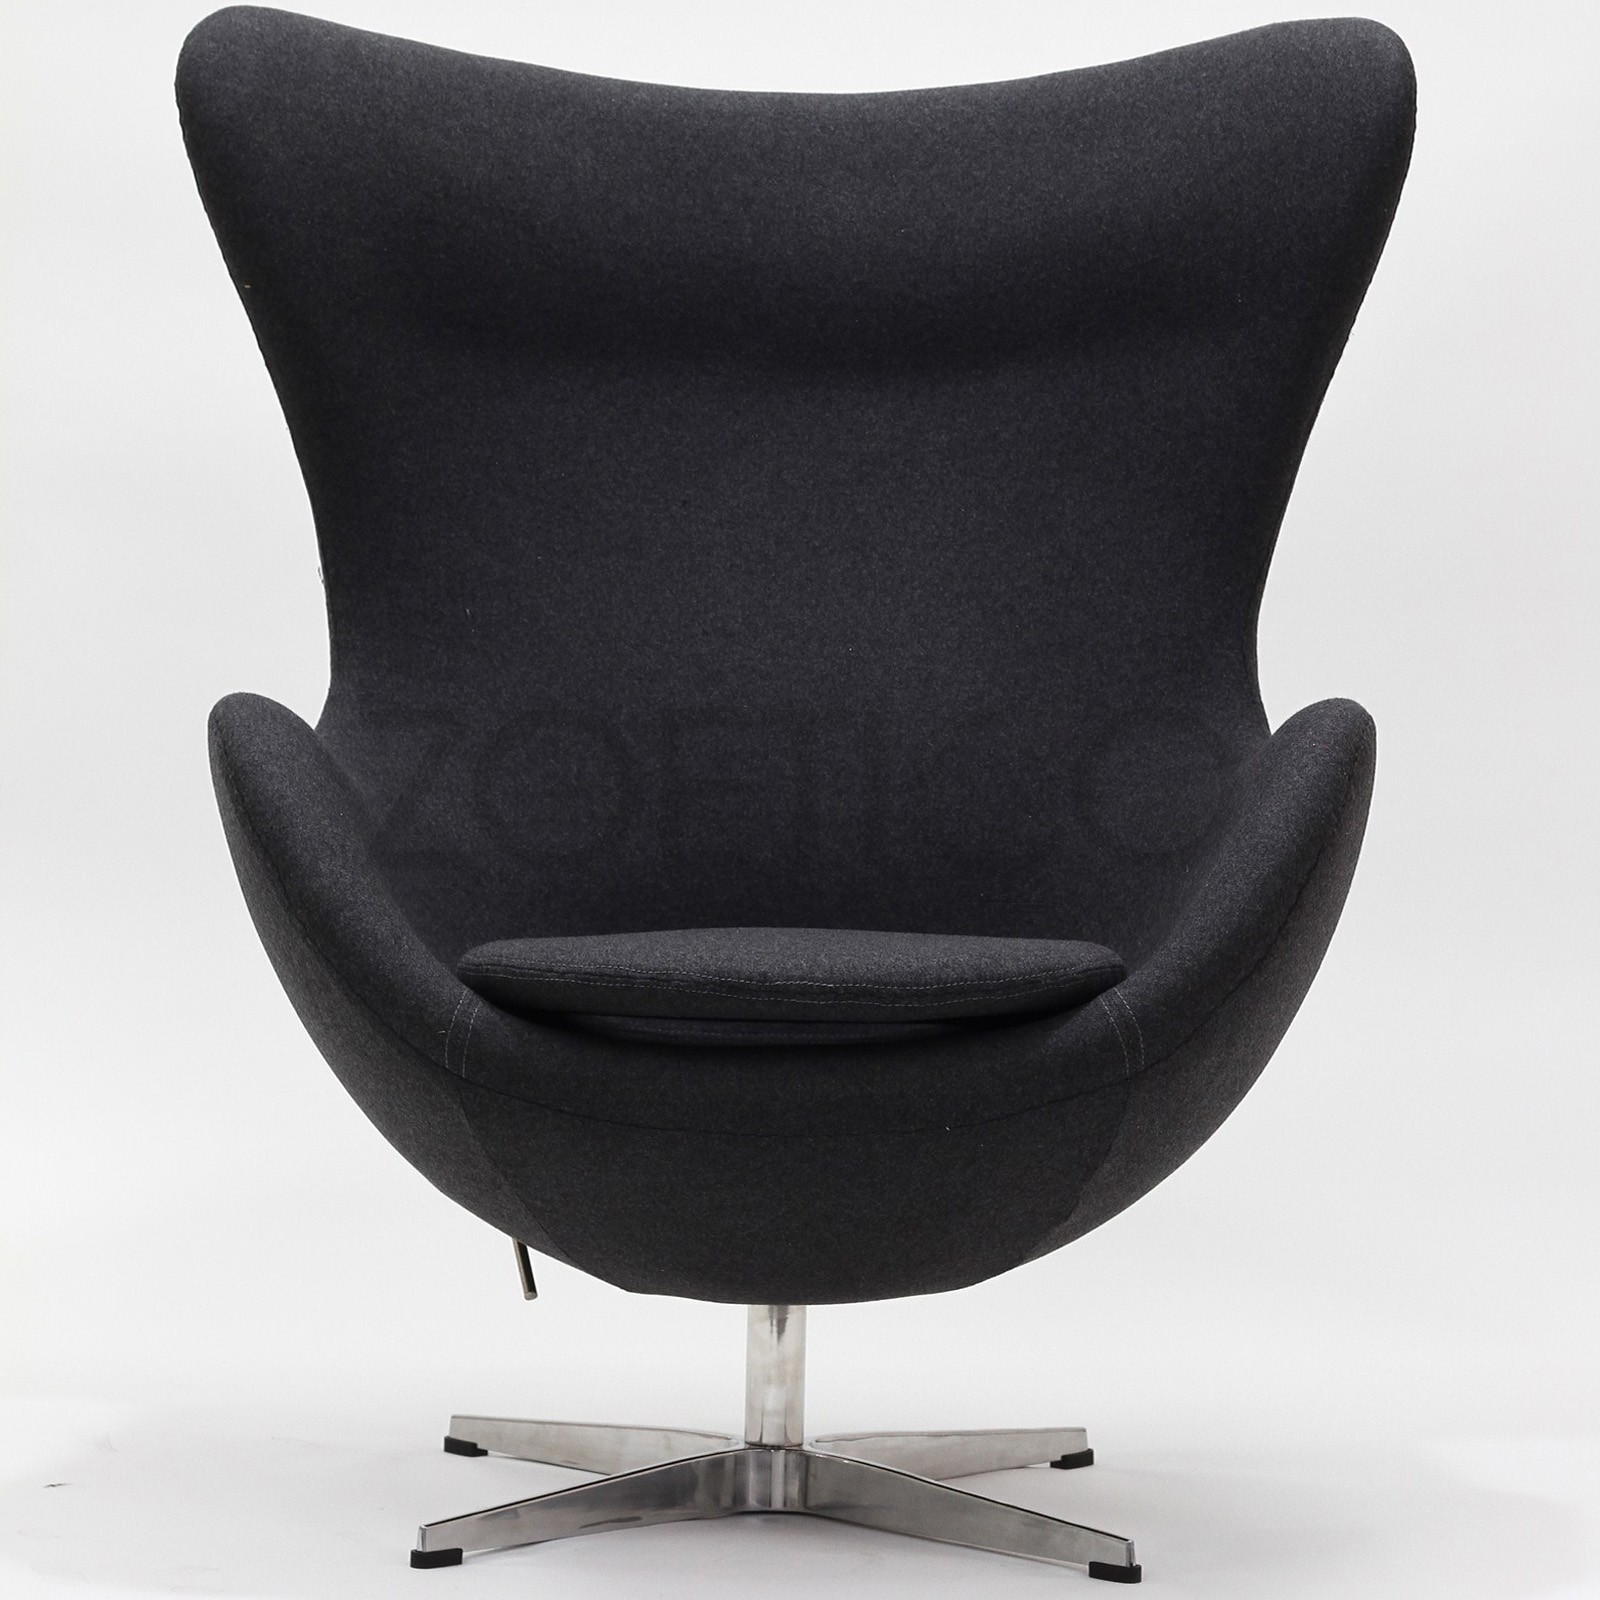 image arne jacobsen egg chair 6533 jpg instituto latino de magia